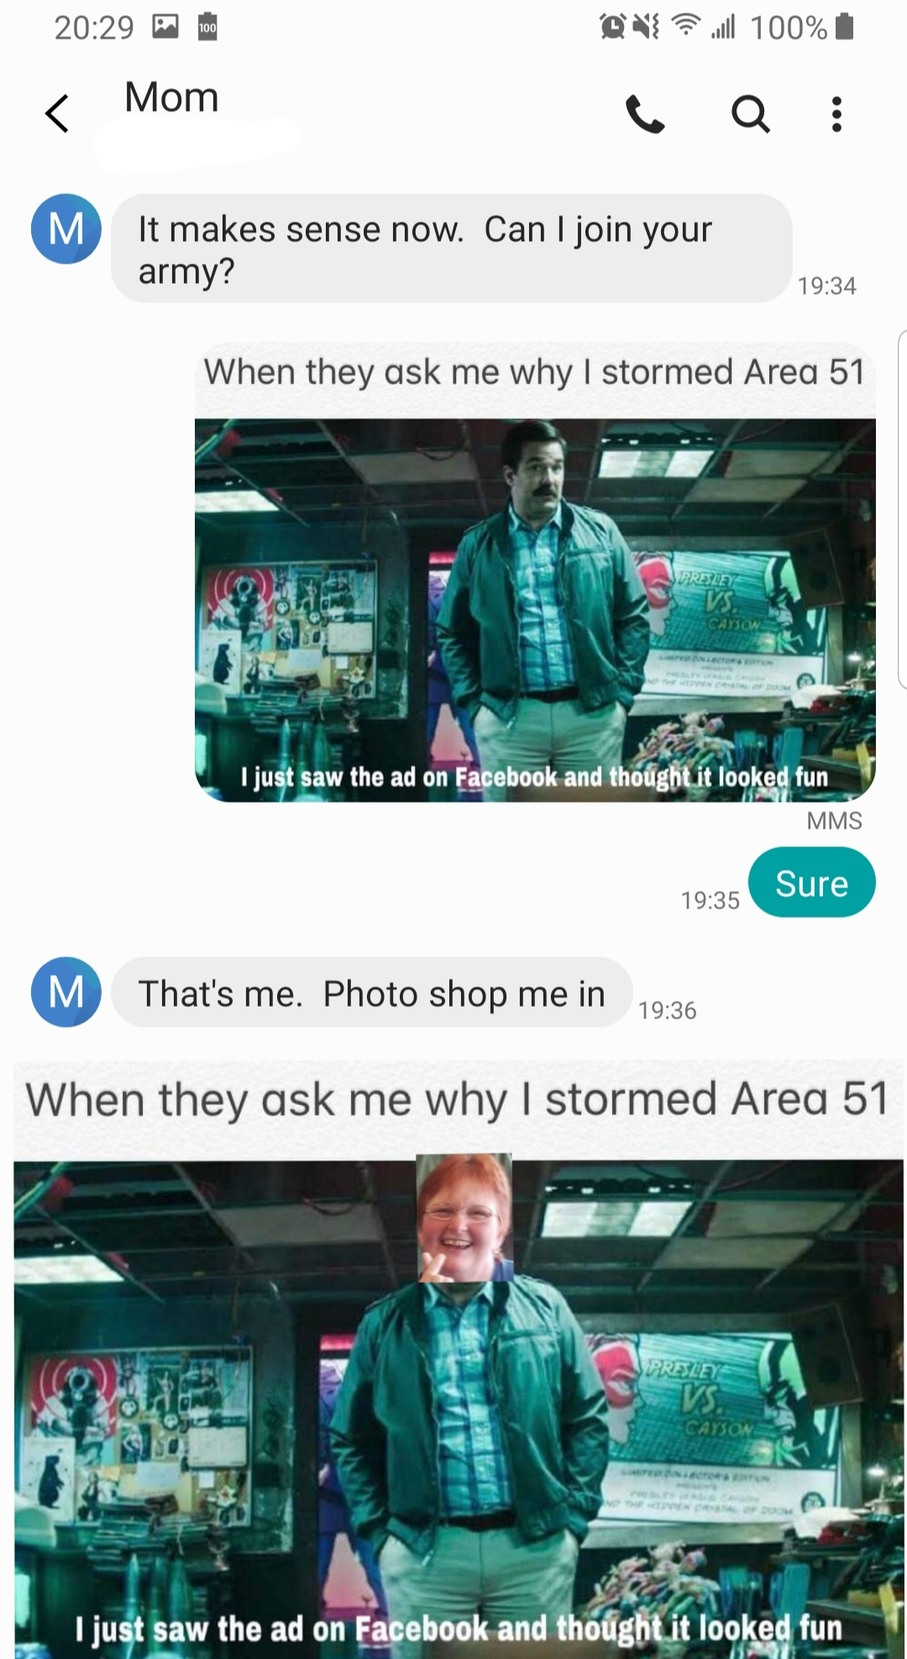 My mom wants to storm Area 51 boiz - meme